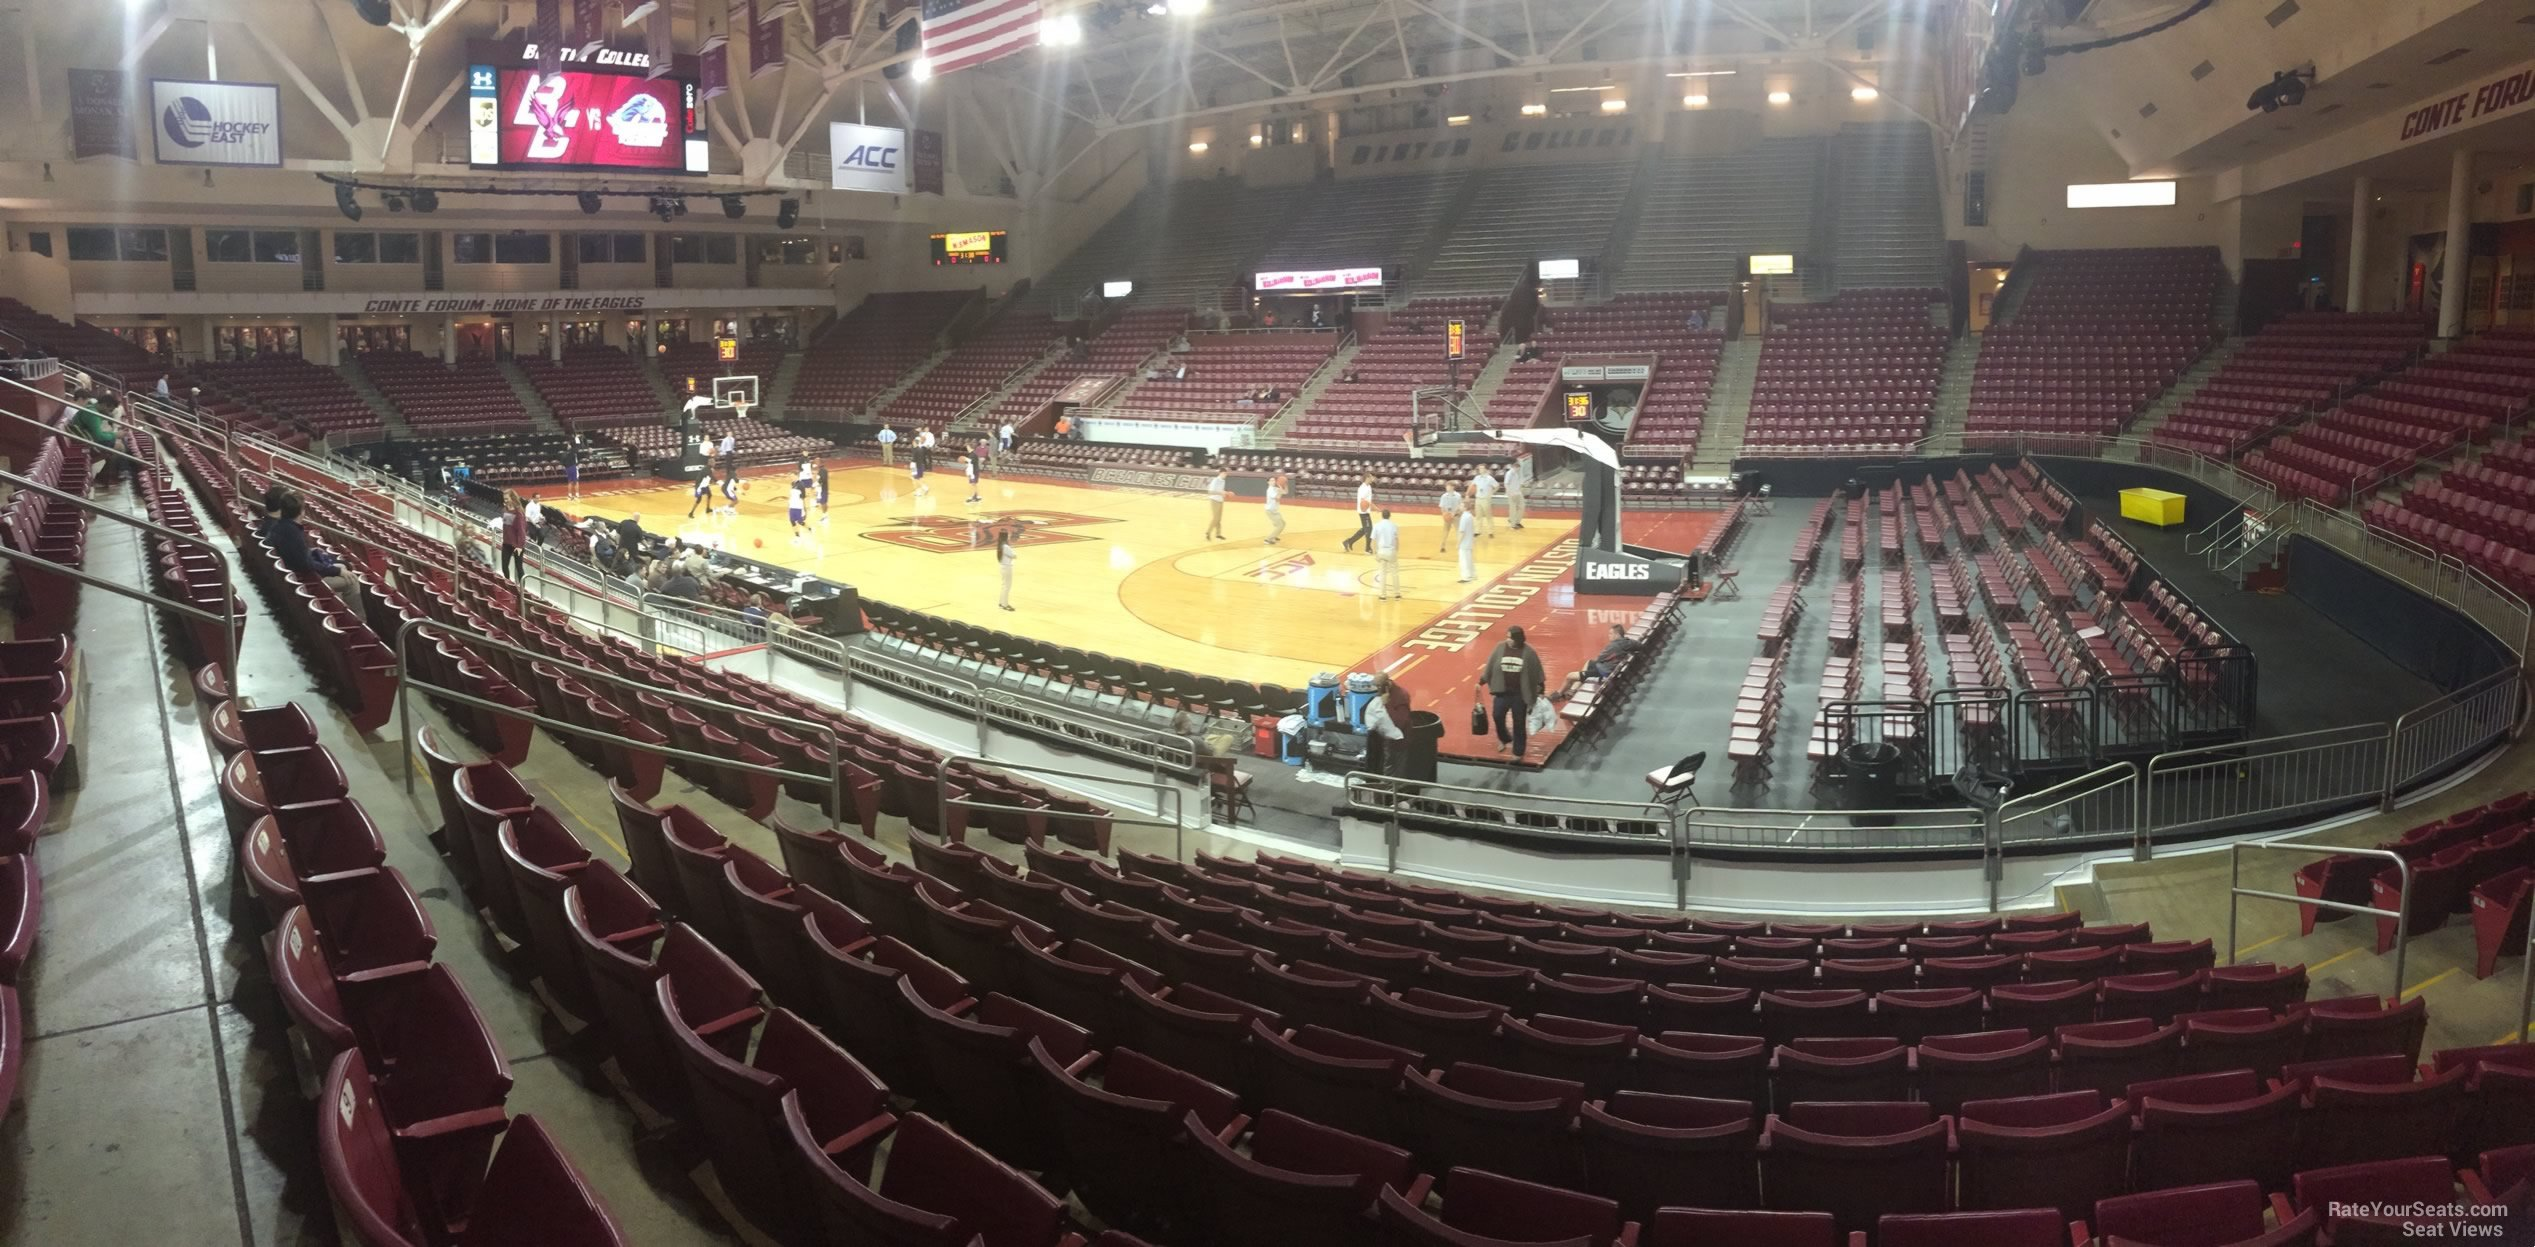 Conte forum section j rateyourseats com